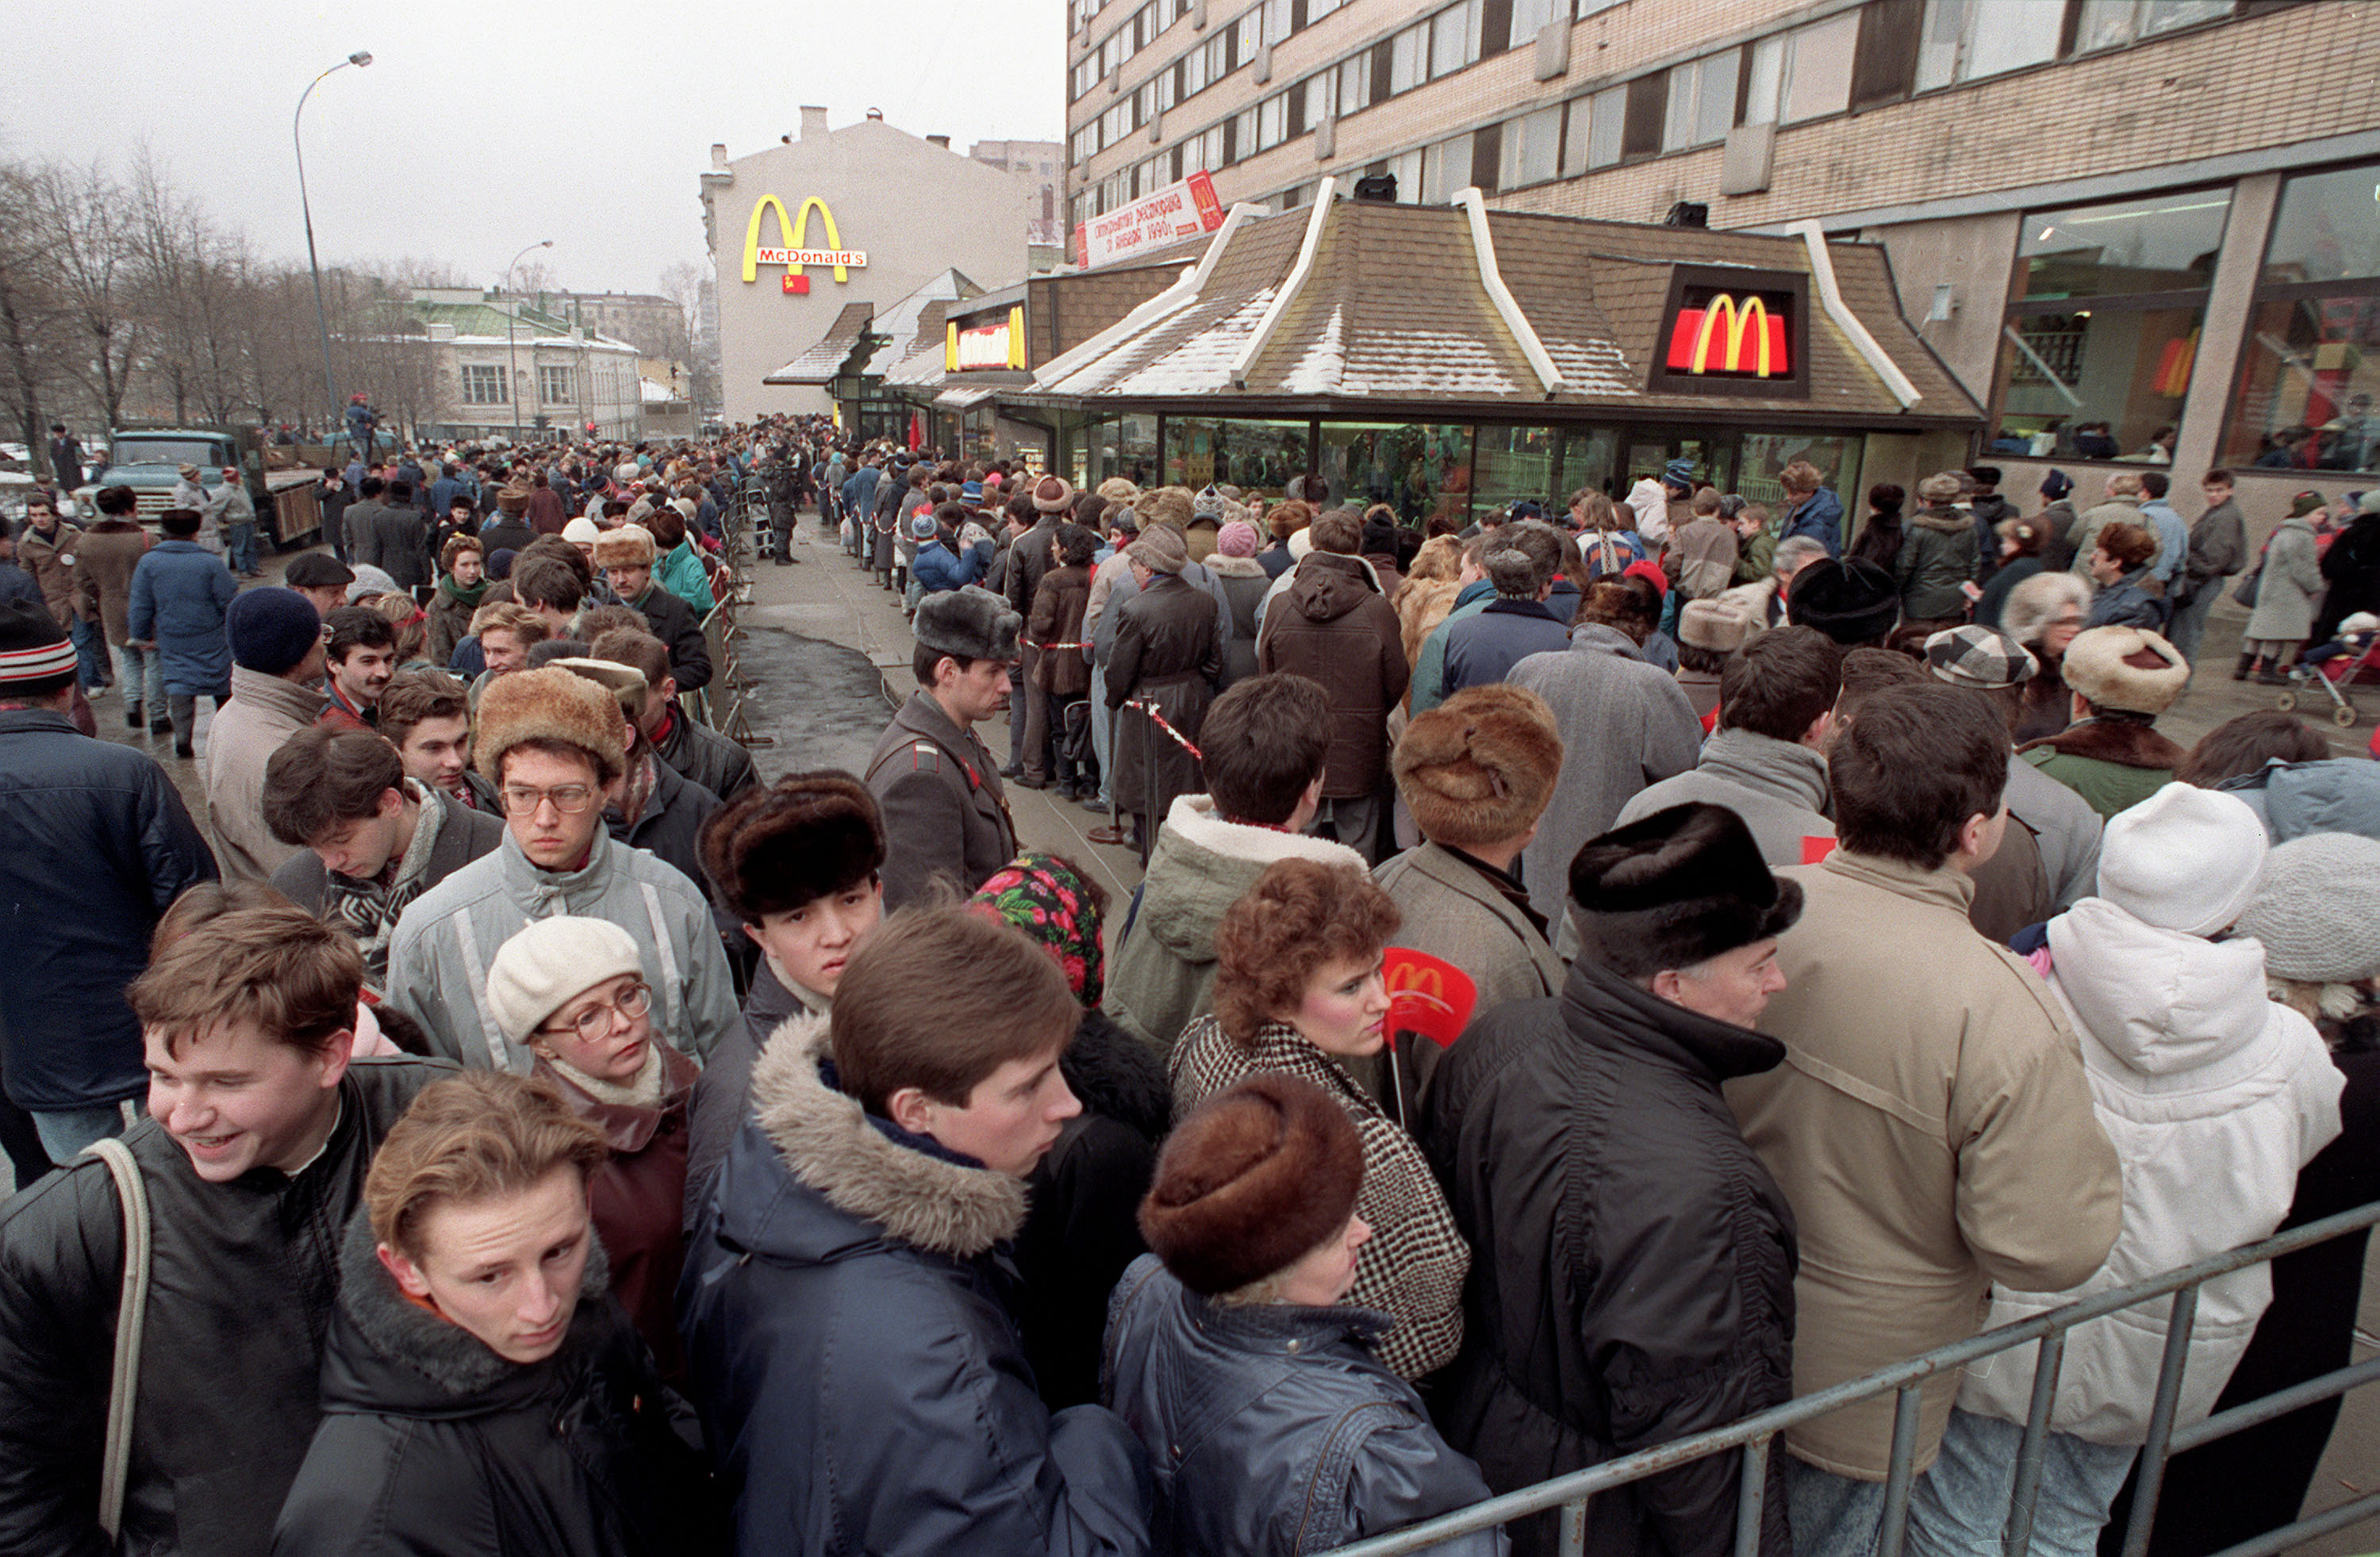 Russia welcomed its first McDonald's 30 years ago - The Washington Post